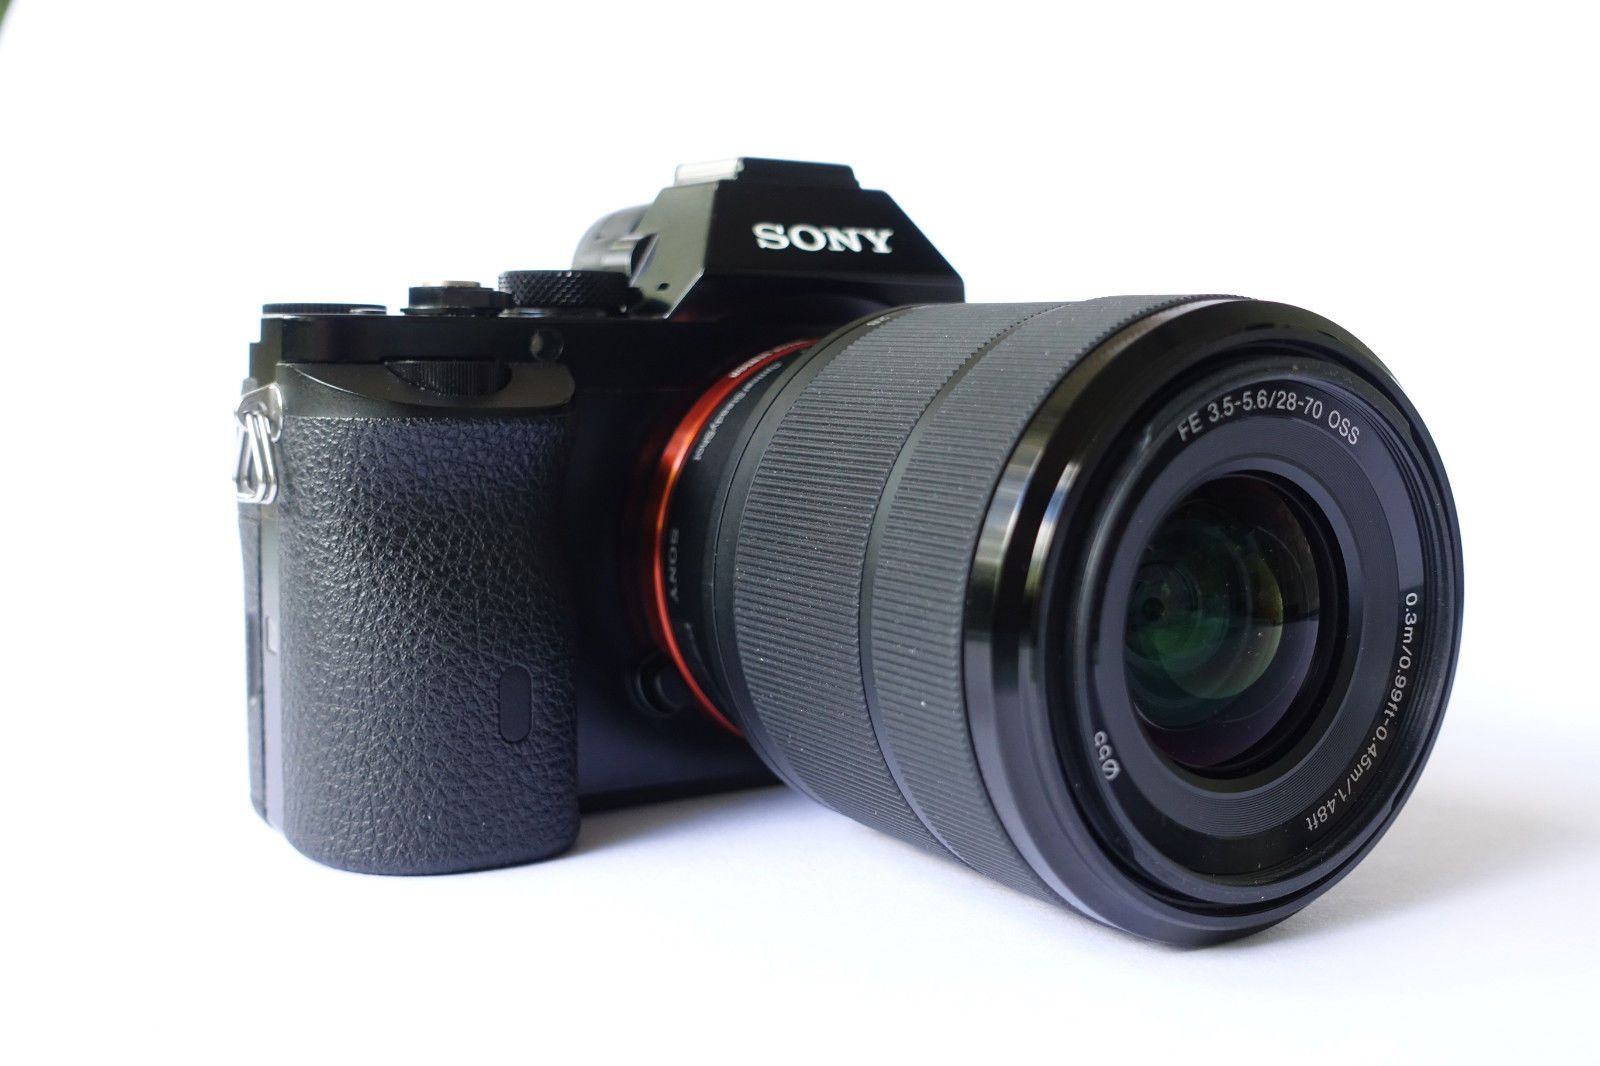 Sony Alpha A7s Ilce 7s Digital Camera With Extra Sony 28 70mm Lens Digital Camera Sony Alpha A7s Digital